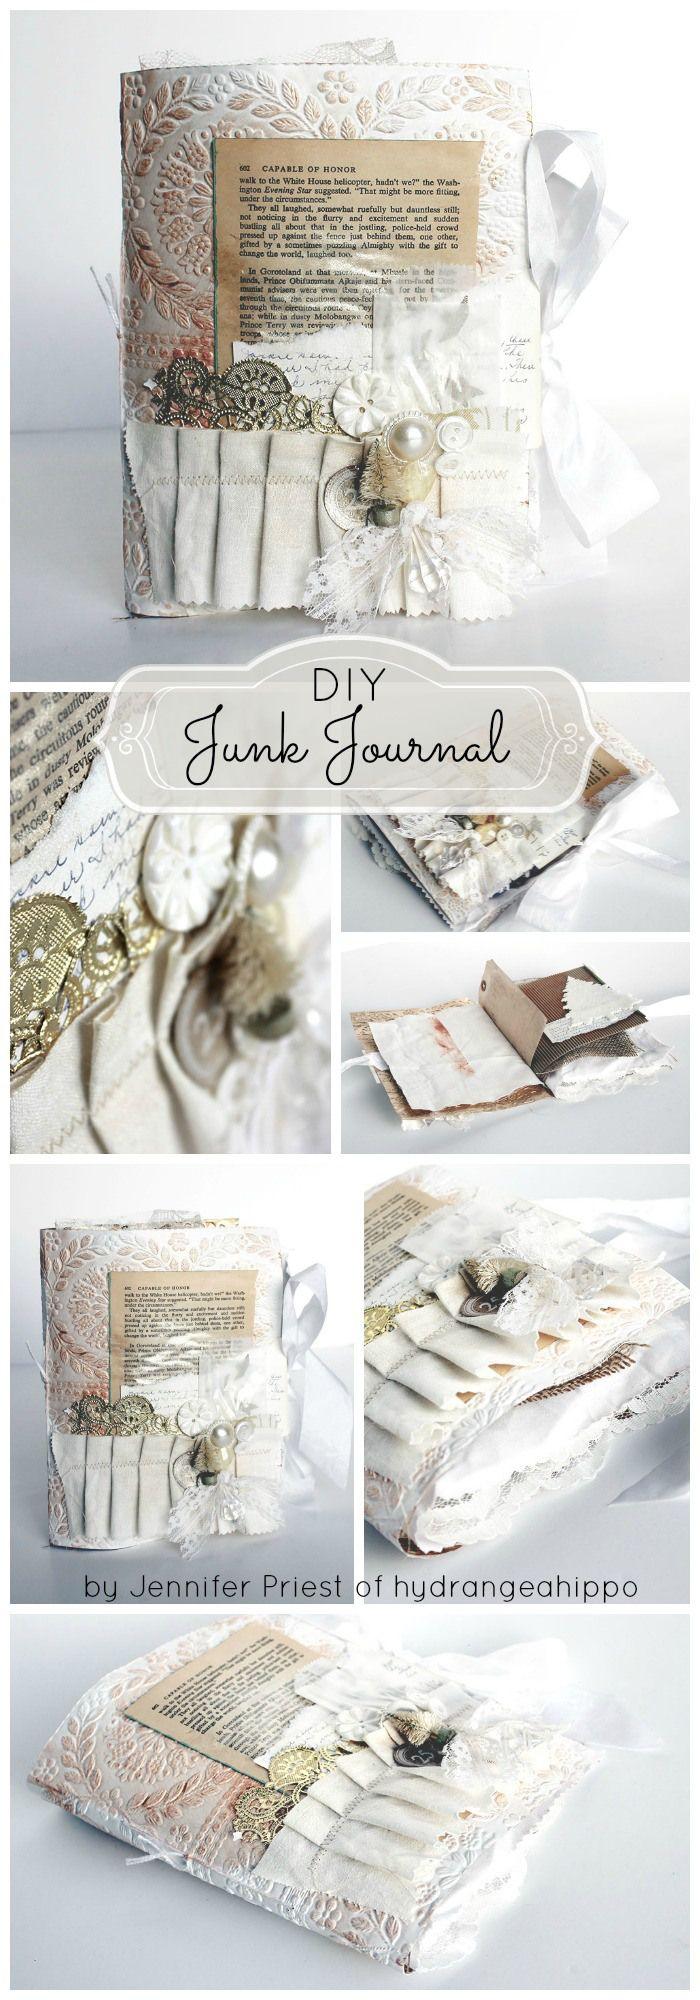 How to Make a Junk Journal by Jennifer Priest of Hydrangea Hippo - Click on the image for the video tutorial.